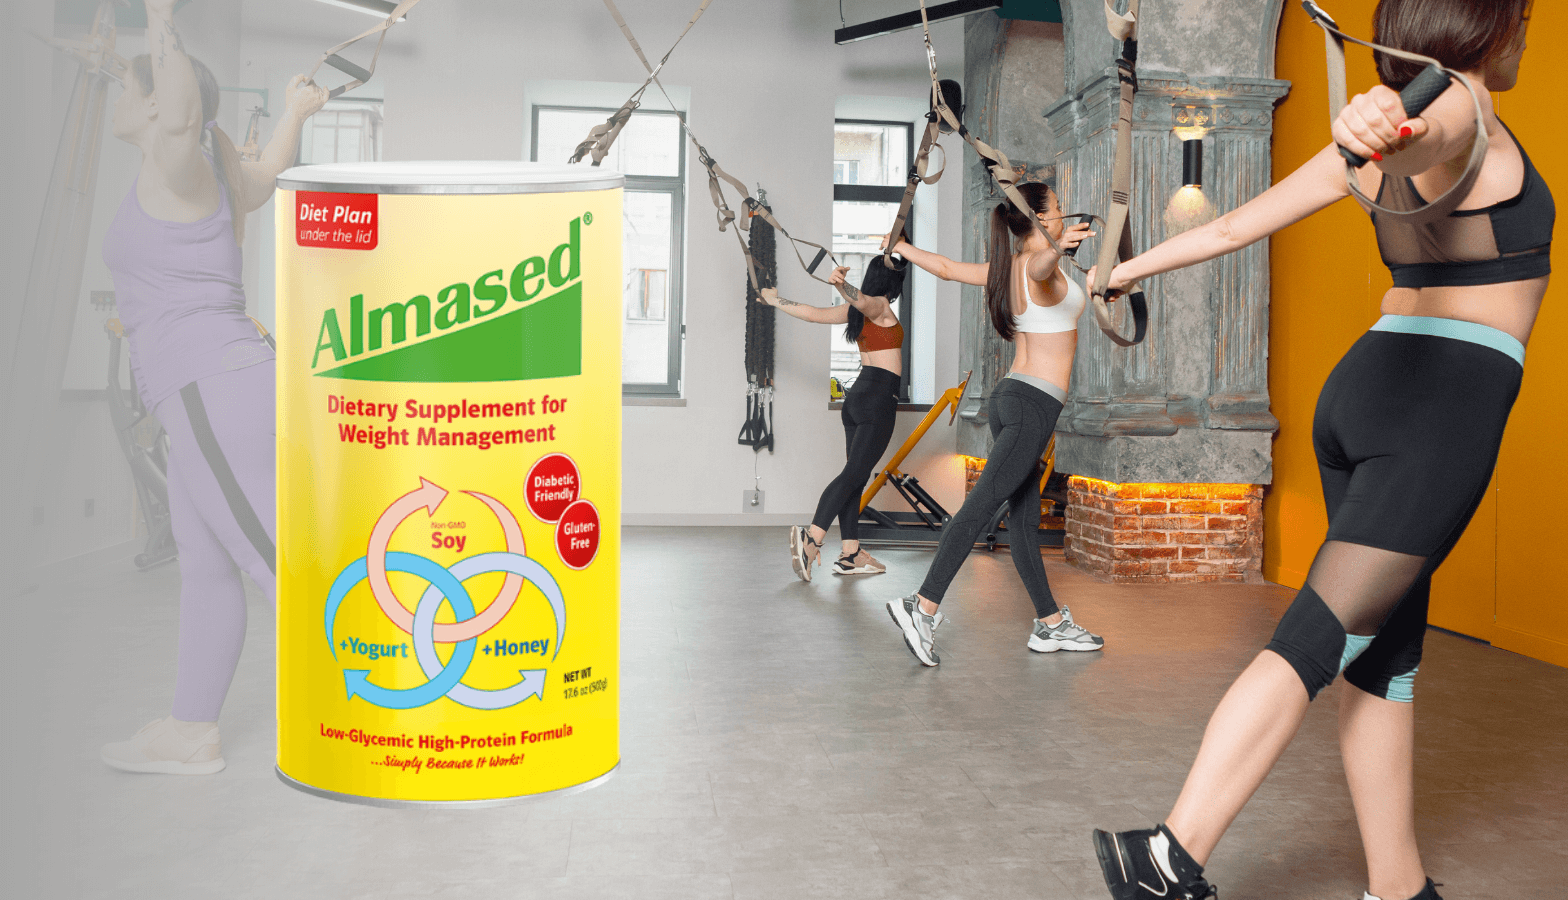 3 girls in the gym doing stretching exercises and a can of alamsed original flavor in the foreground